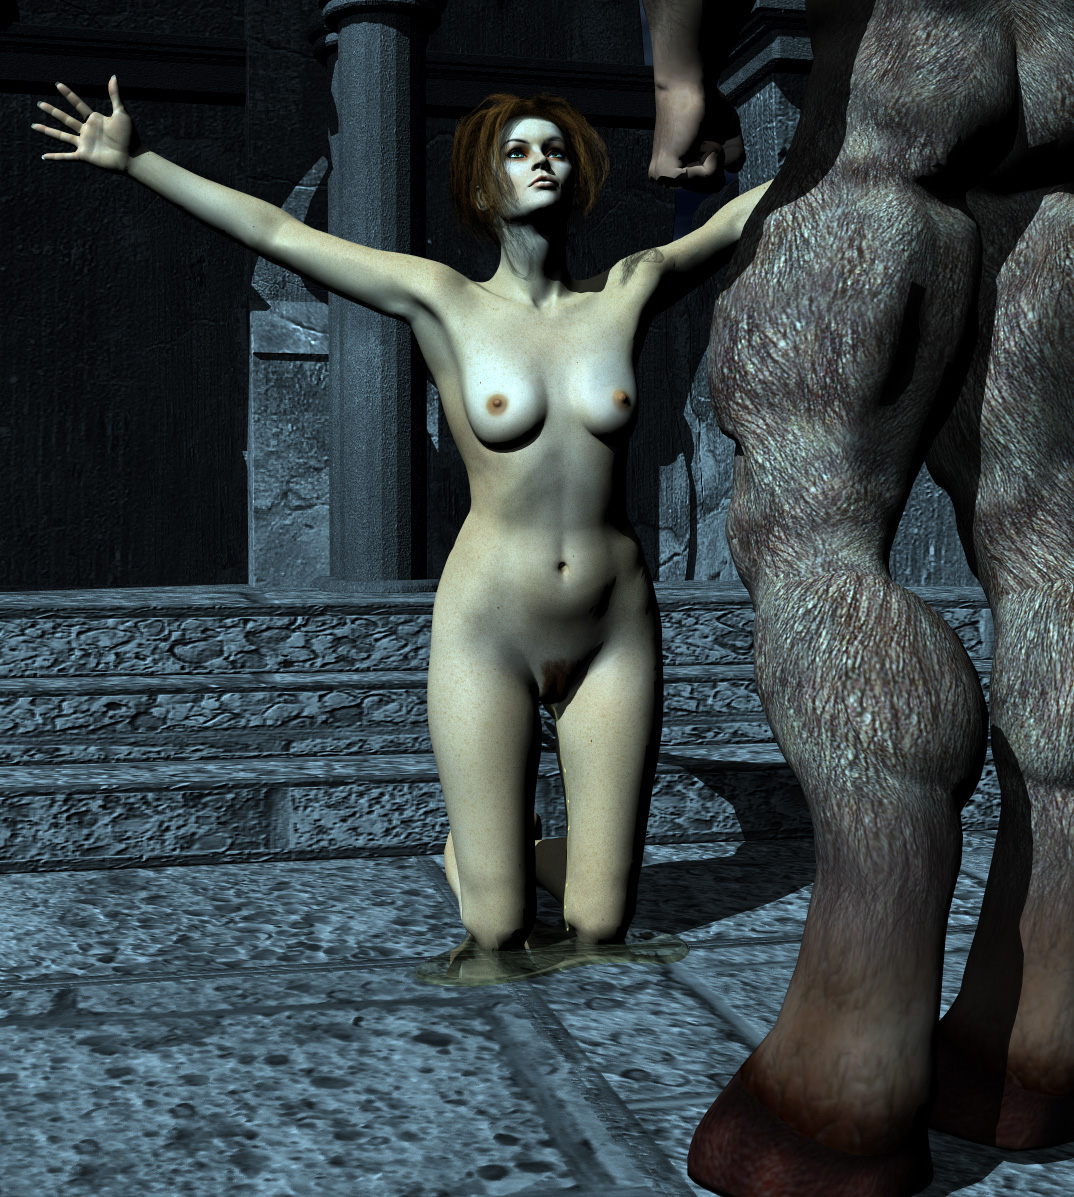 L4d witch naked pornos gallery